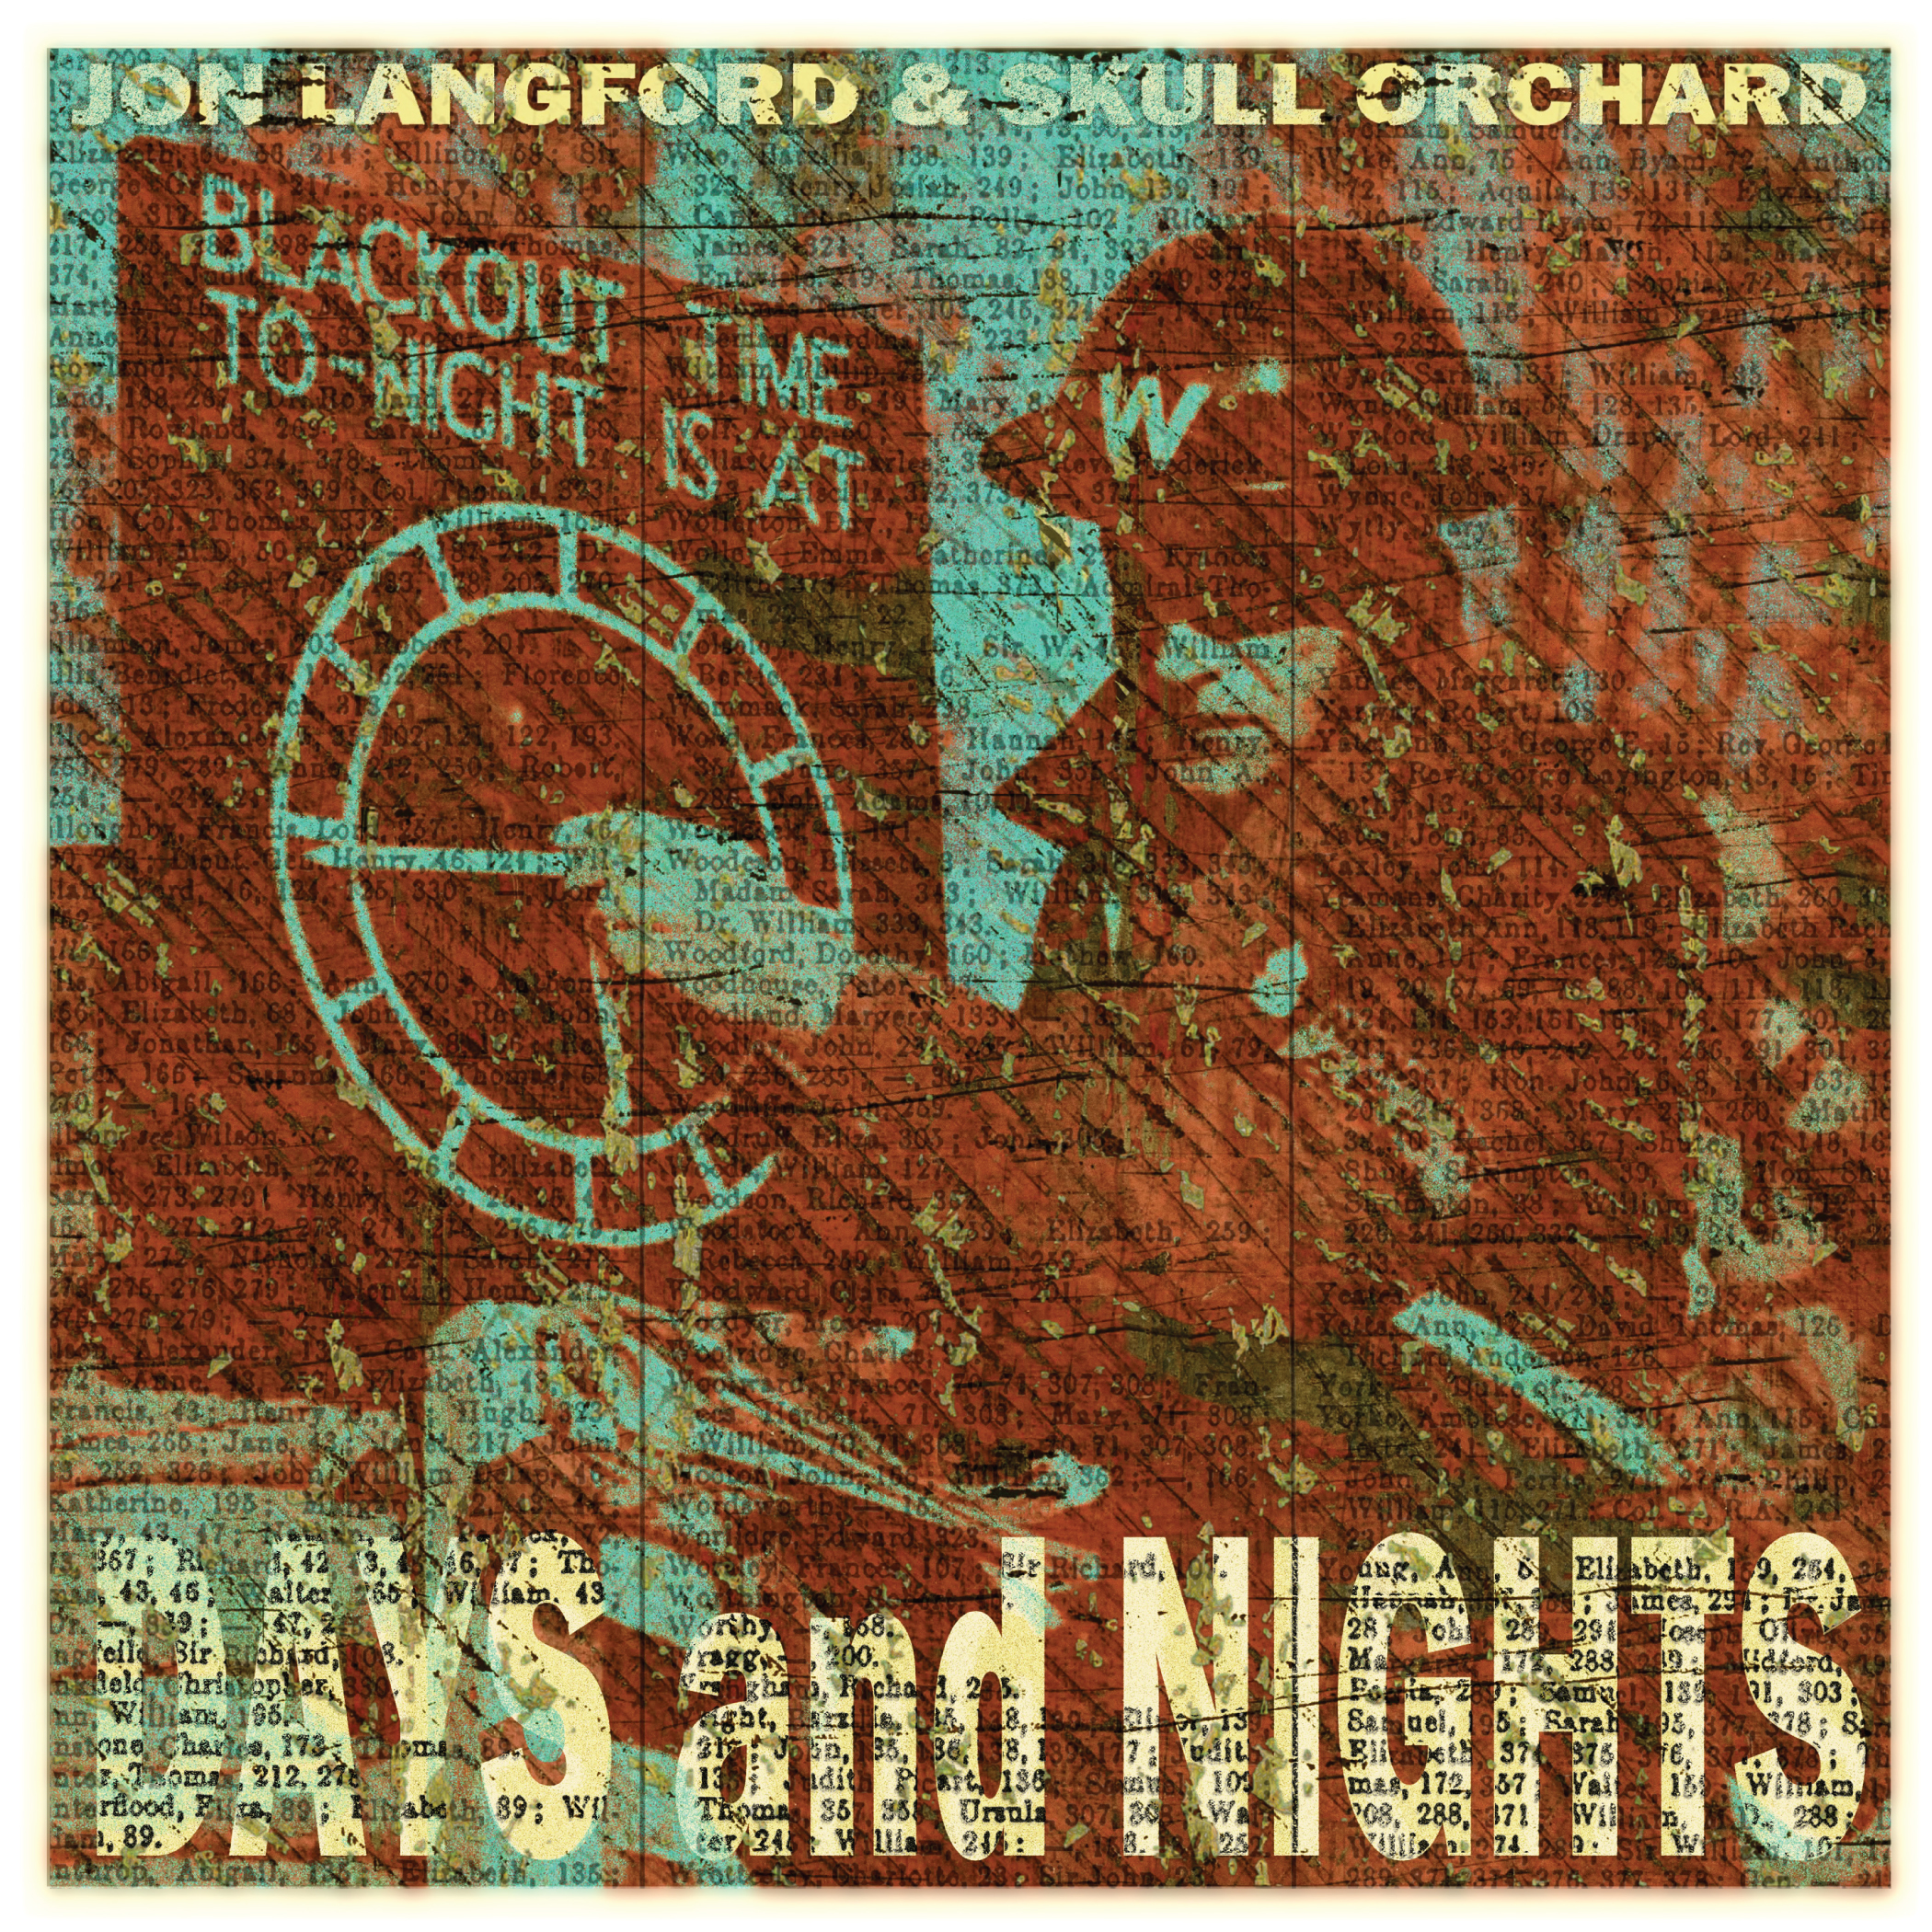 Jon Langford - Days & Nights